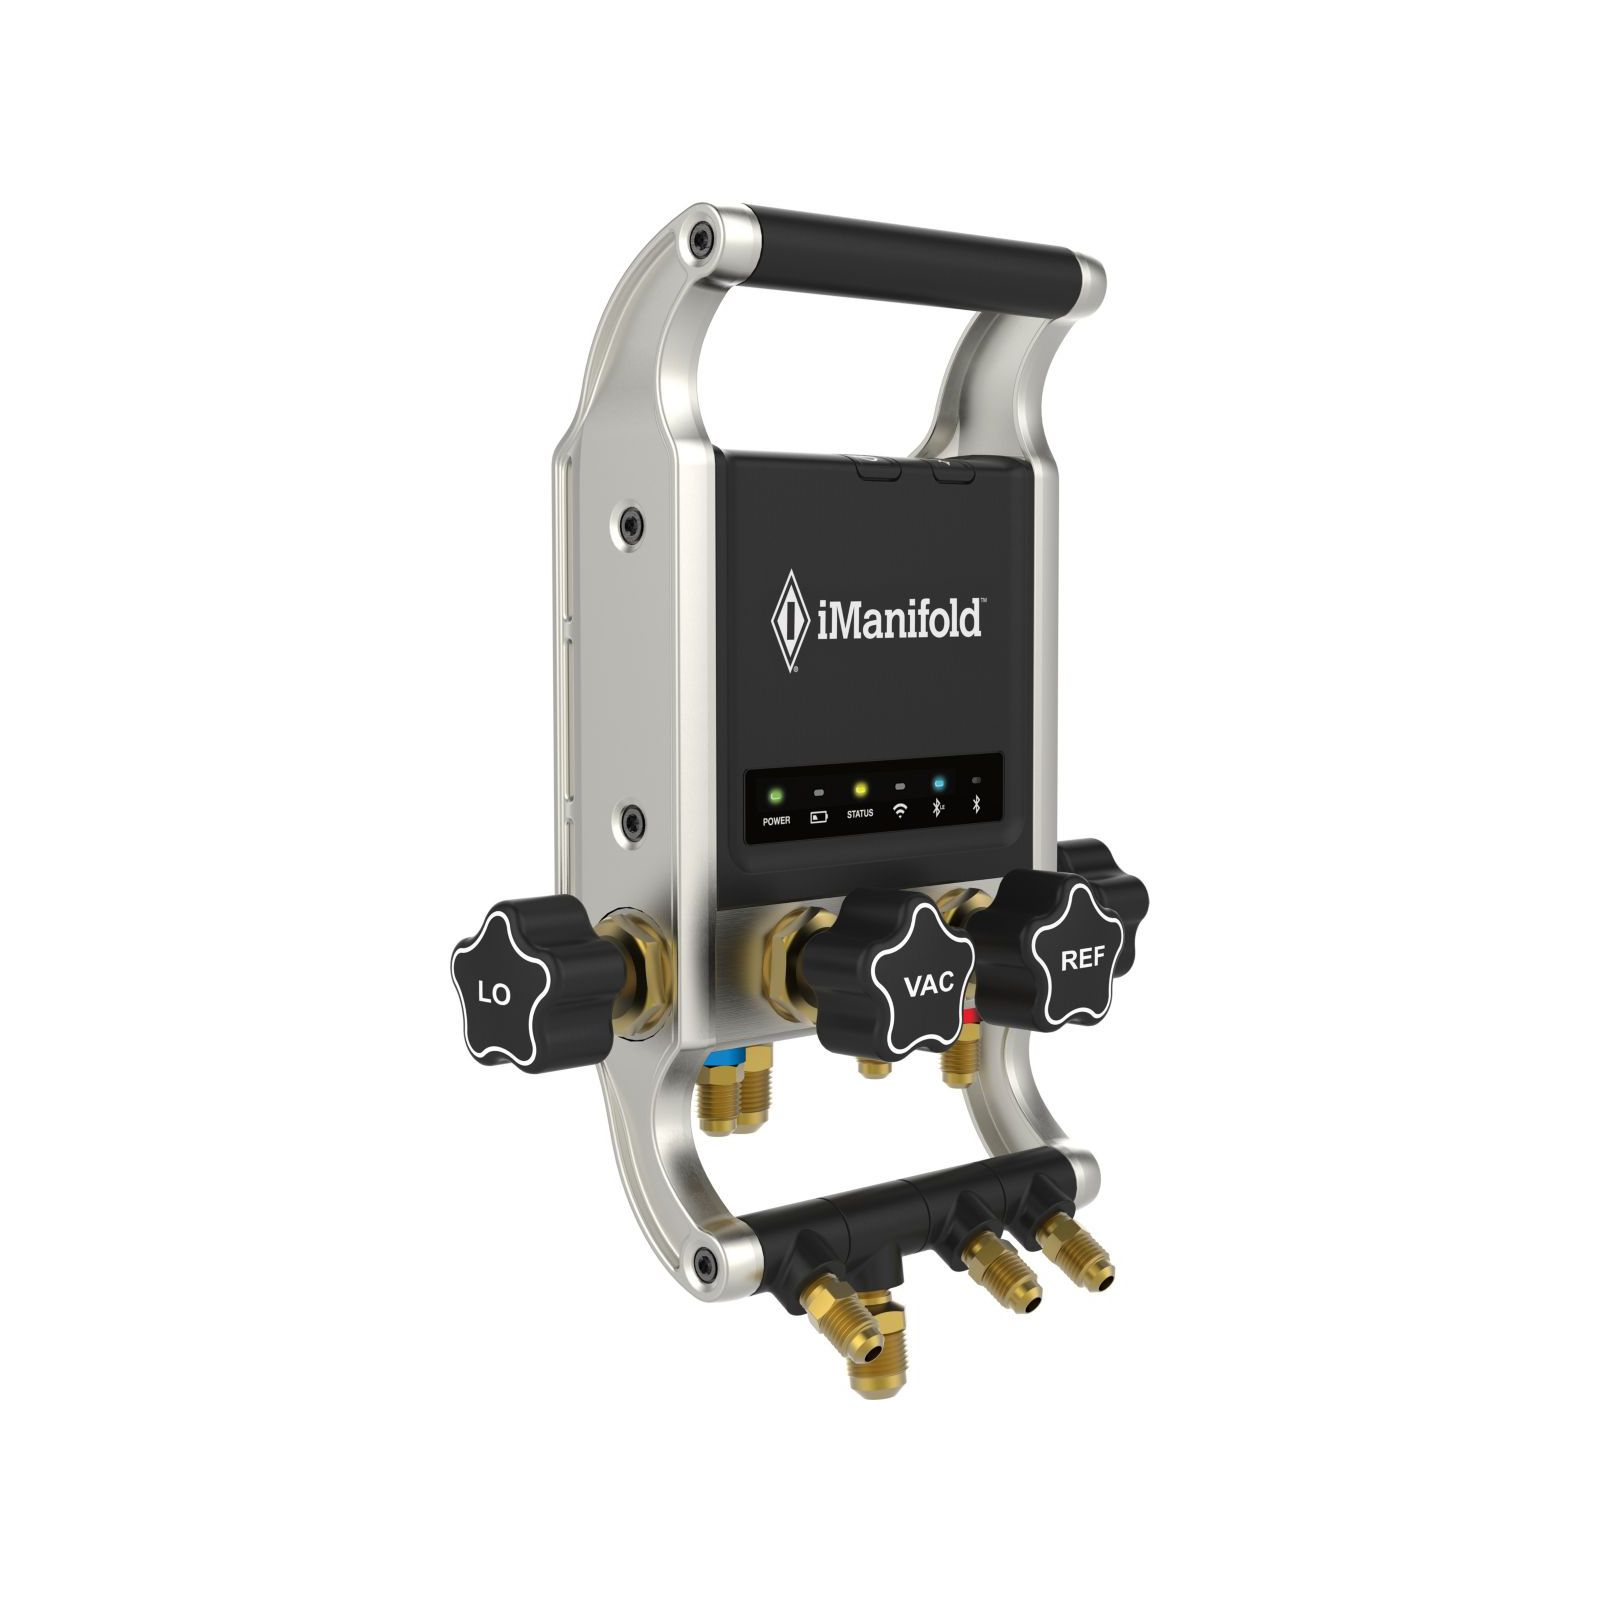 Imperial 900-M - iManifold Wireless Digital Refrigeration Manifold